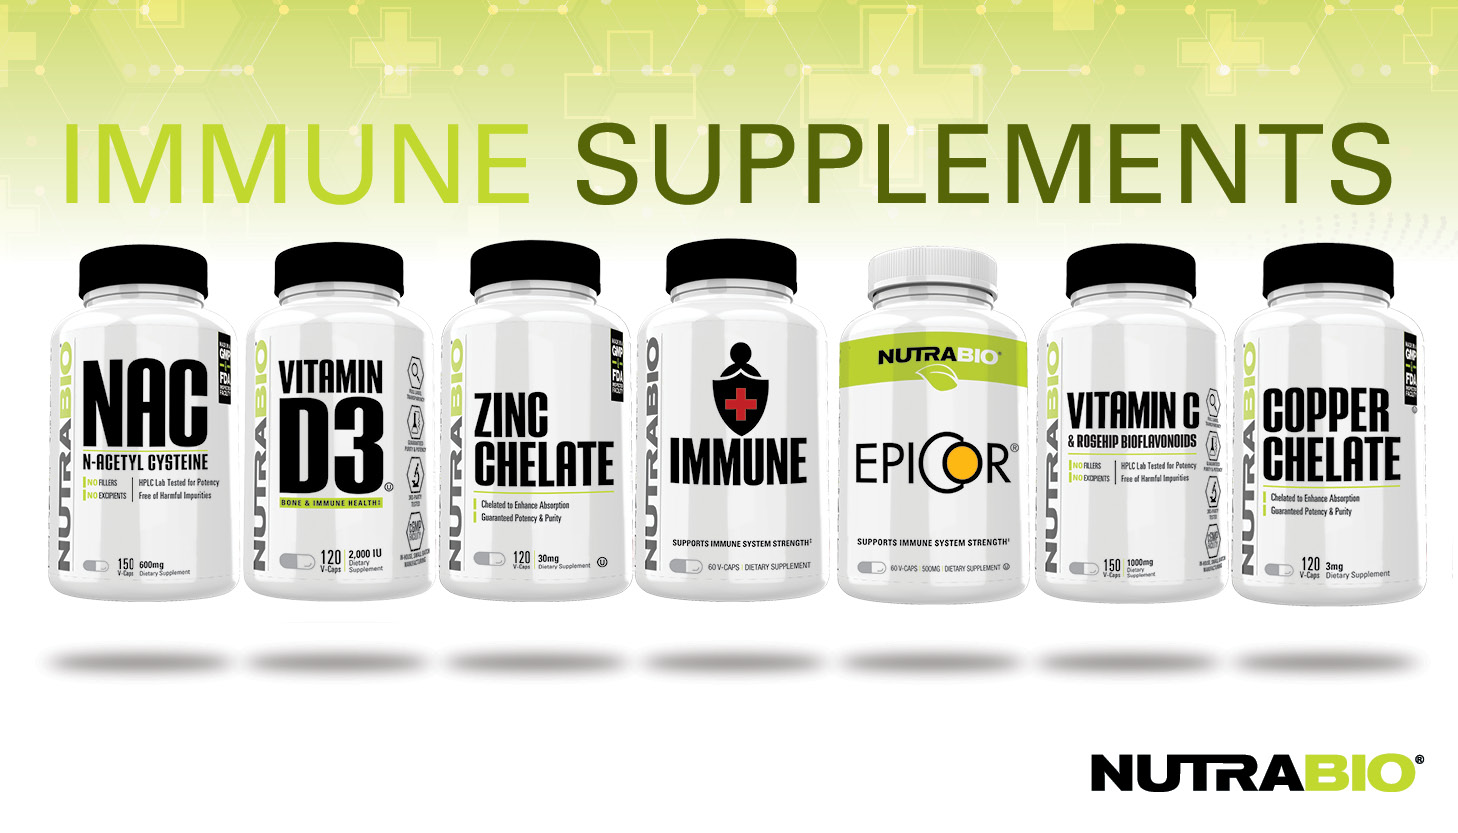 NutraBio Immune Supplements: Give Your Immune System the Weapons it Wants!